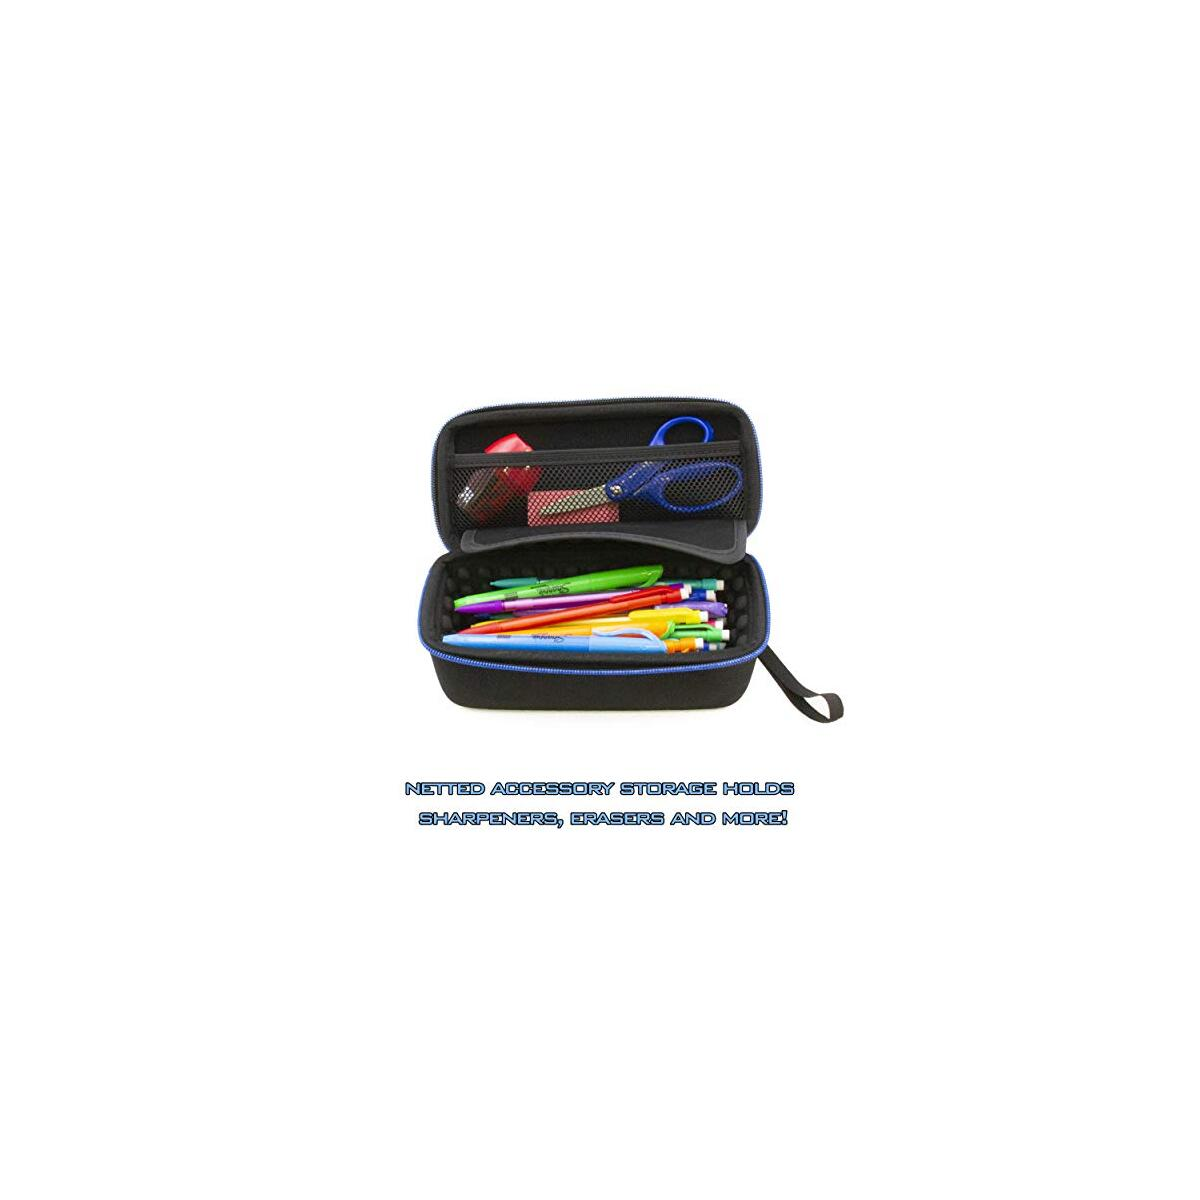 CASEMATIX Pencil Case and Protective Pencil Pouch with Removable Wrist Strap - Large Pencil Bag for 50+ Pens, Pencils and Markers with Padded Divider, Netted Accessory Storage and More